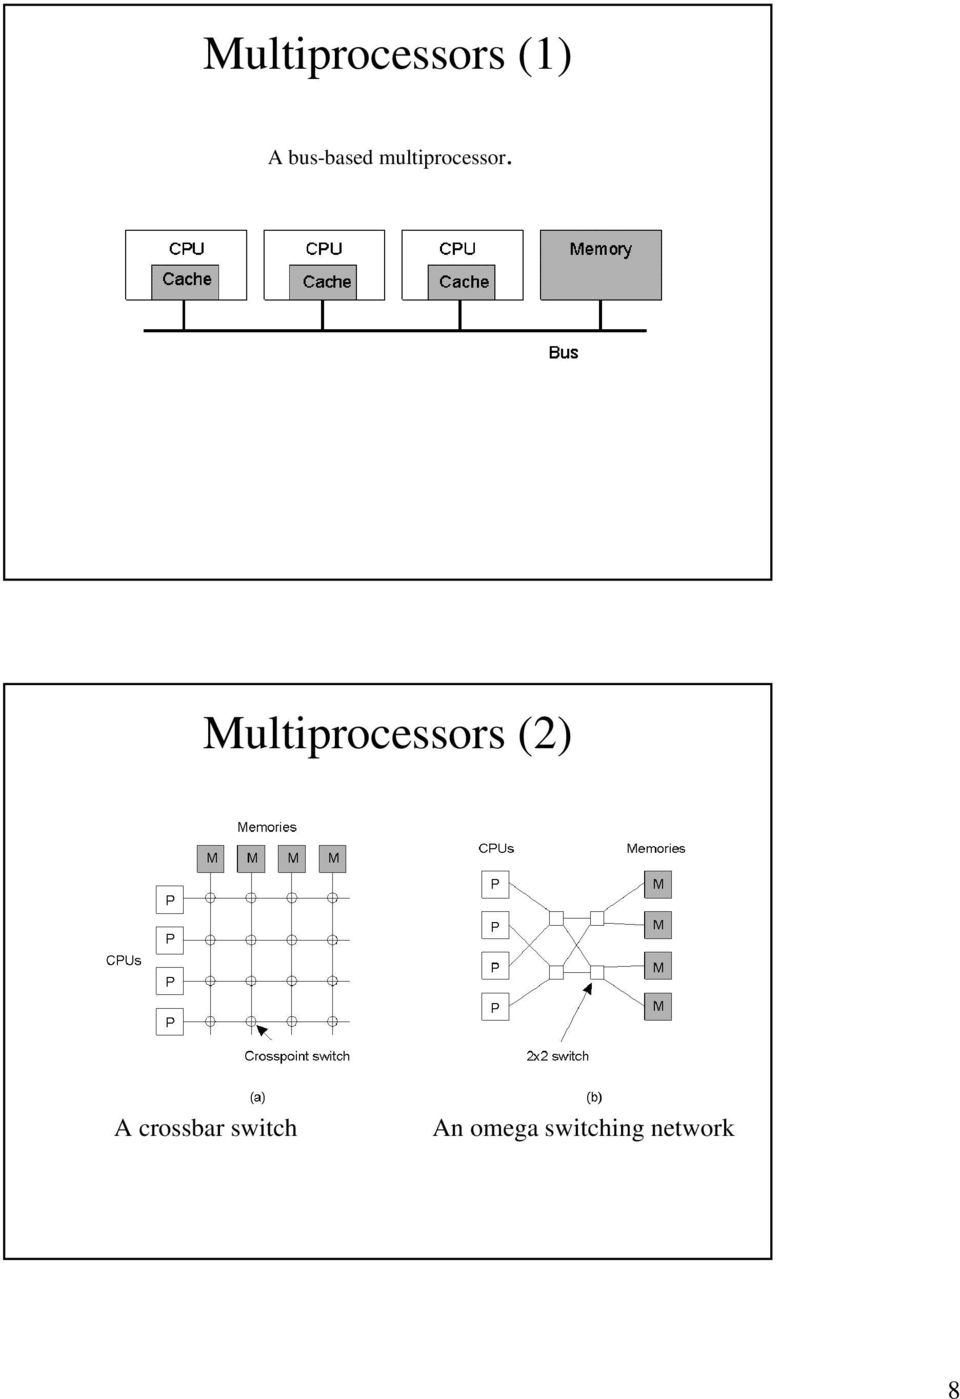 Multiprocessors (2) A